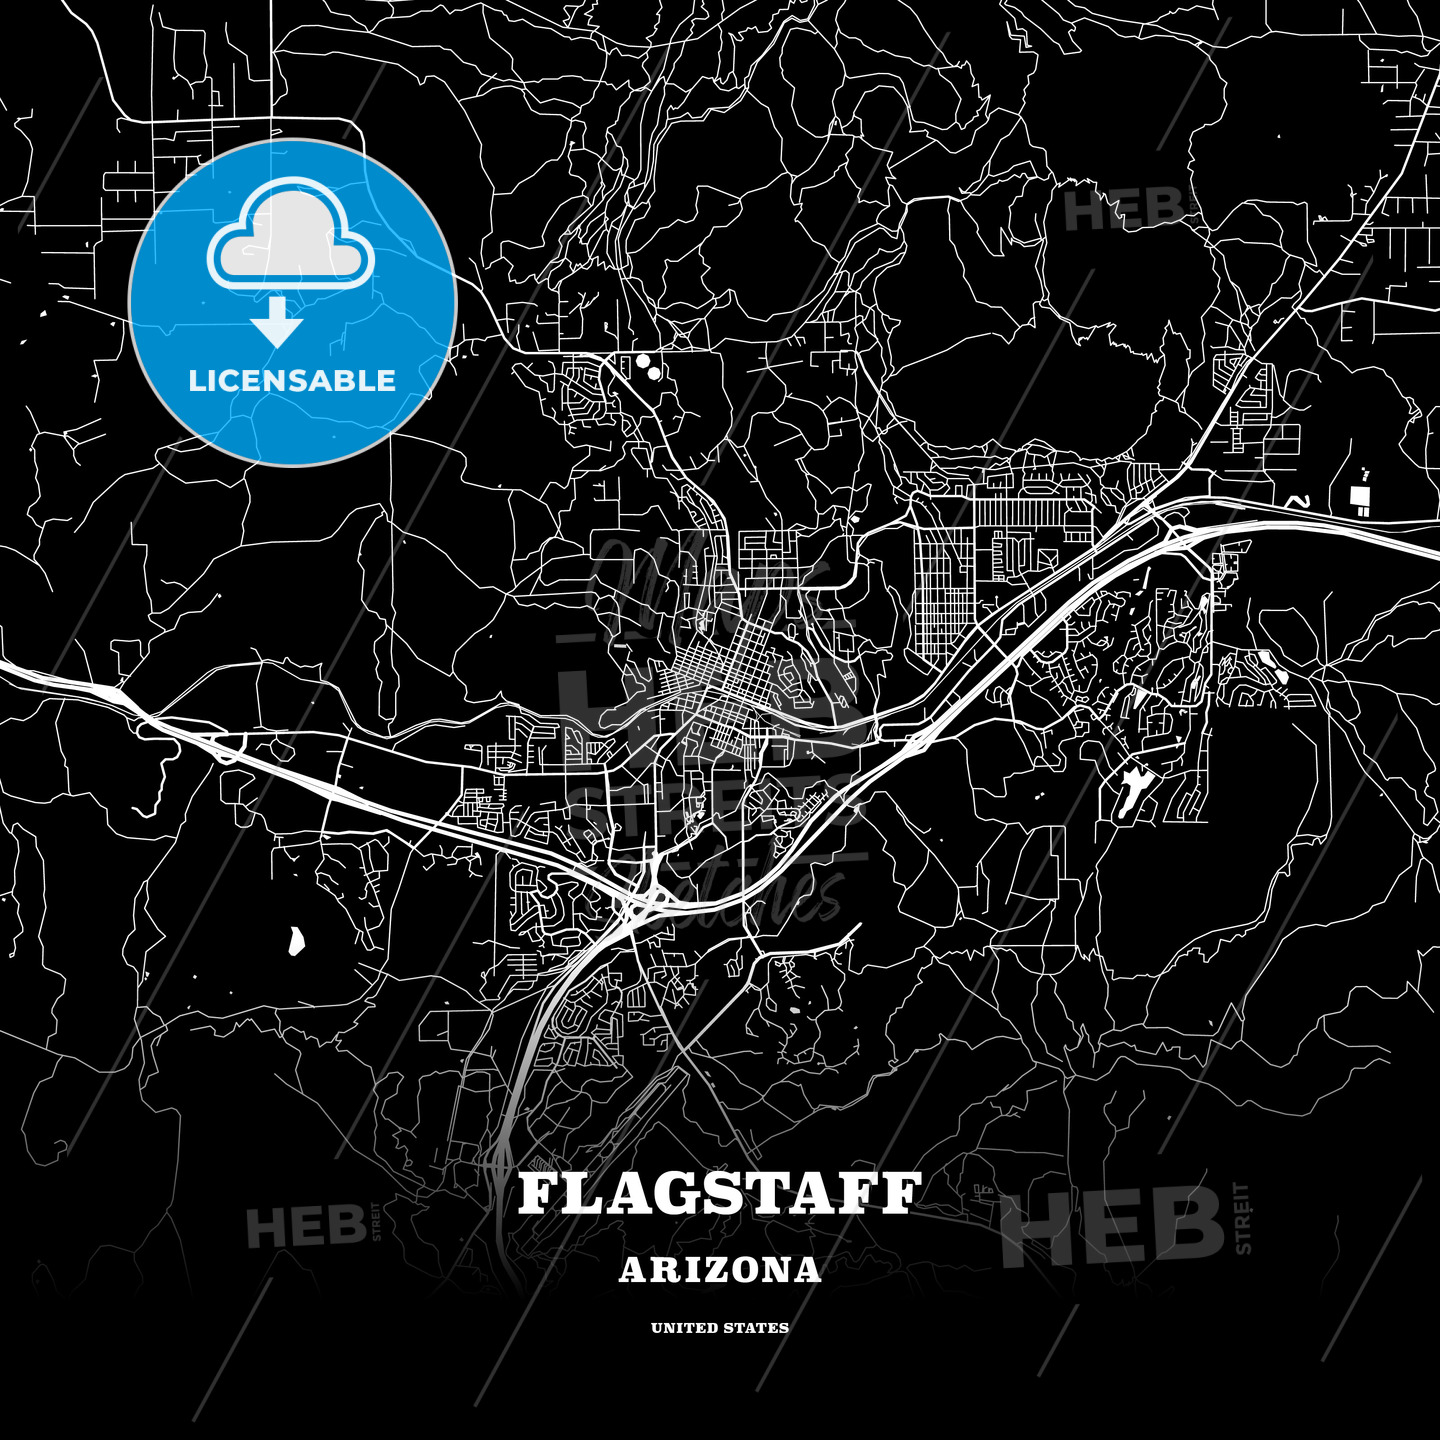 Map Of Flagstaff Arizona.Black Map Poster Template Of Flagstaff Arizona Usa Hebstreits